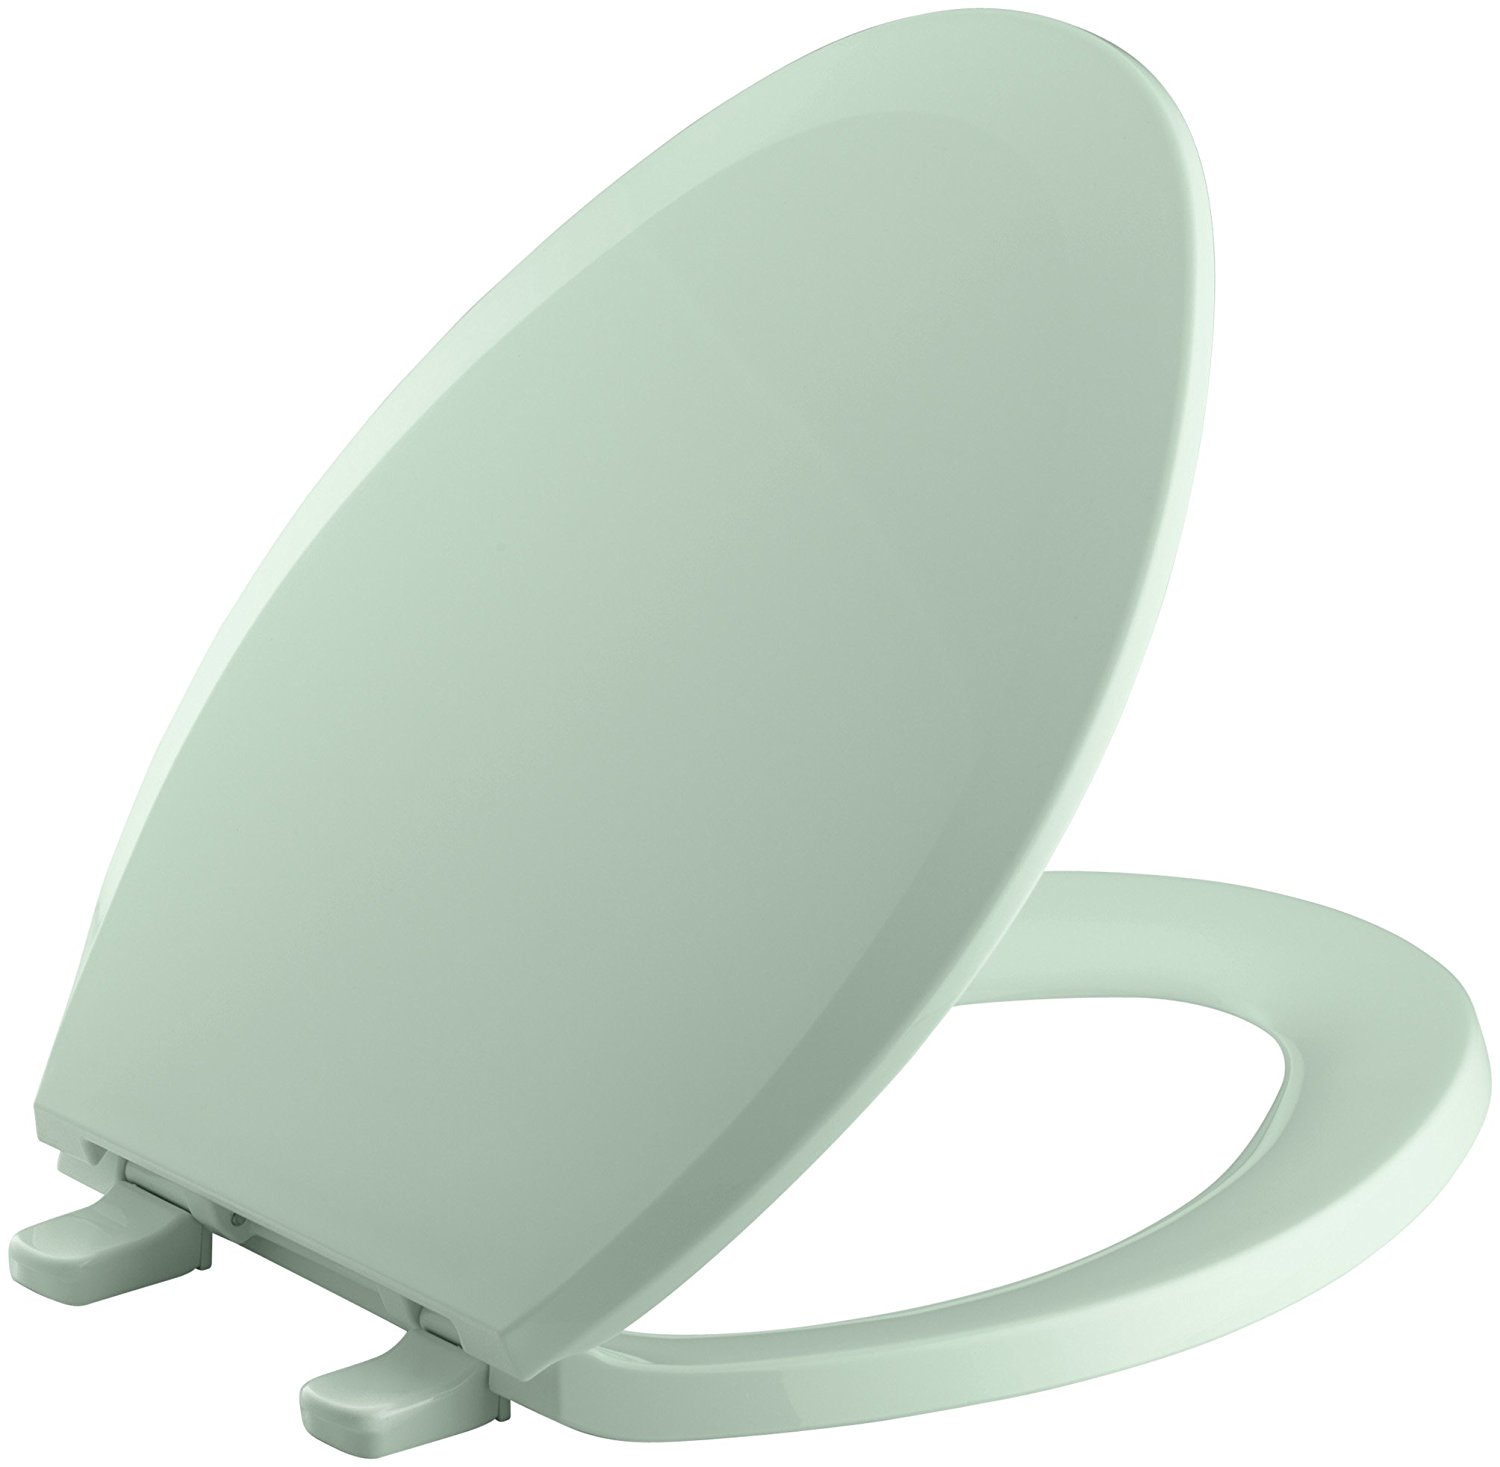 Toilet Seat Clipart Free Download On Clipartmag